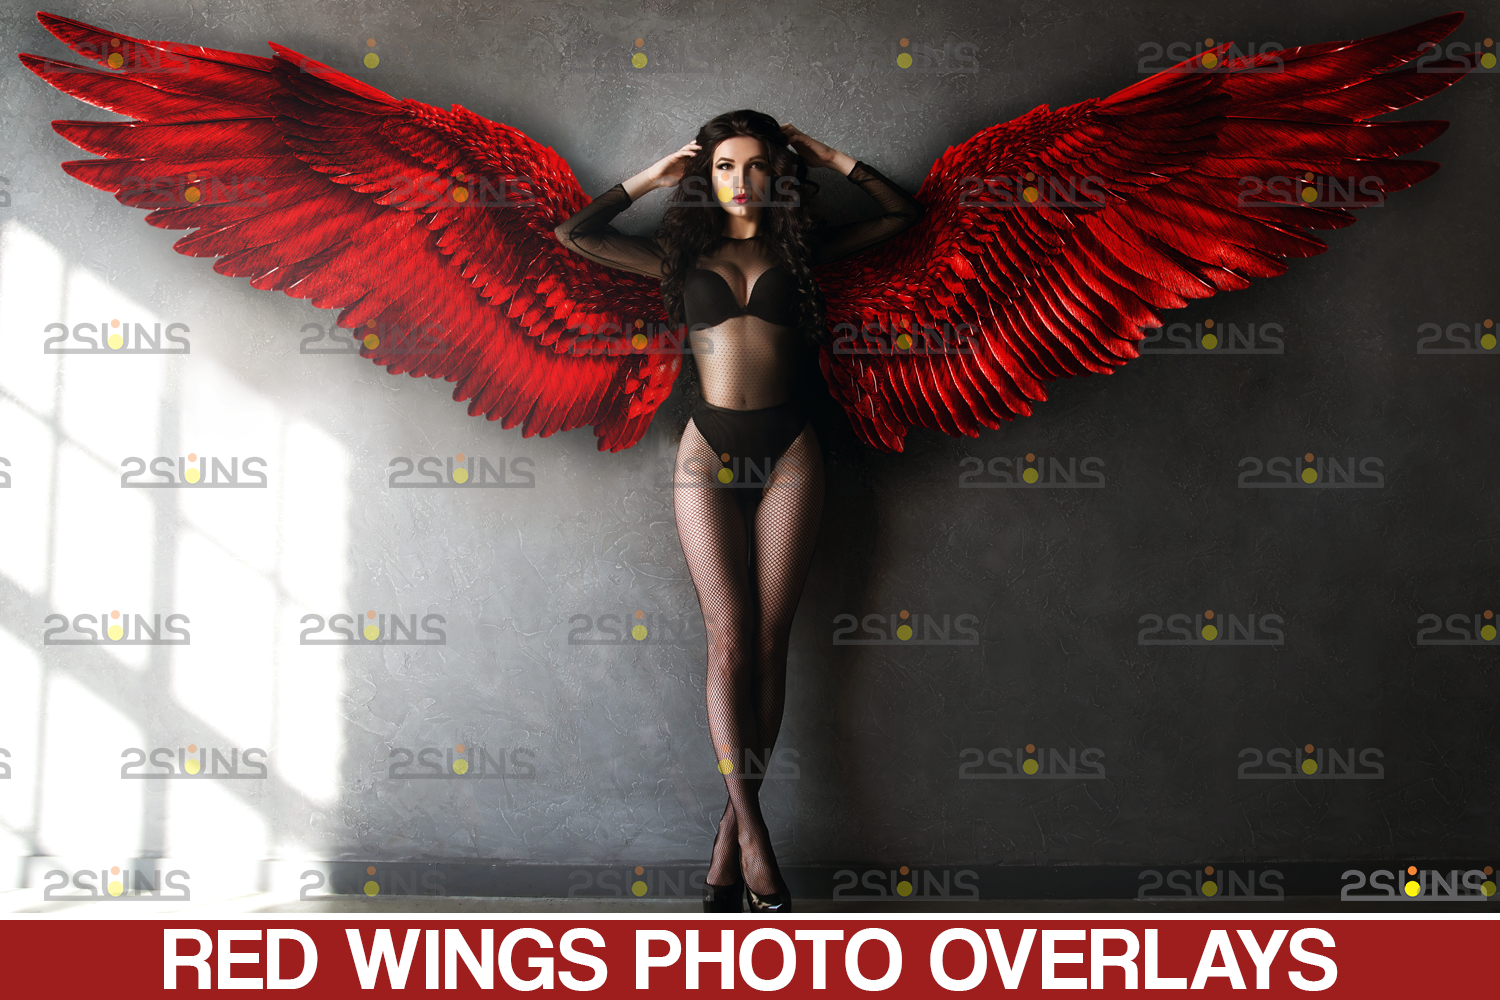 Red angel wings png & Photoshop overlay: Digital angel wings overlay, Digital backdrops wings, Fire - 001 64 -